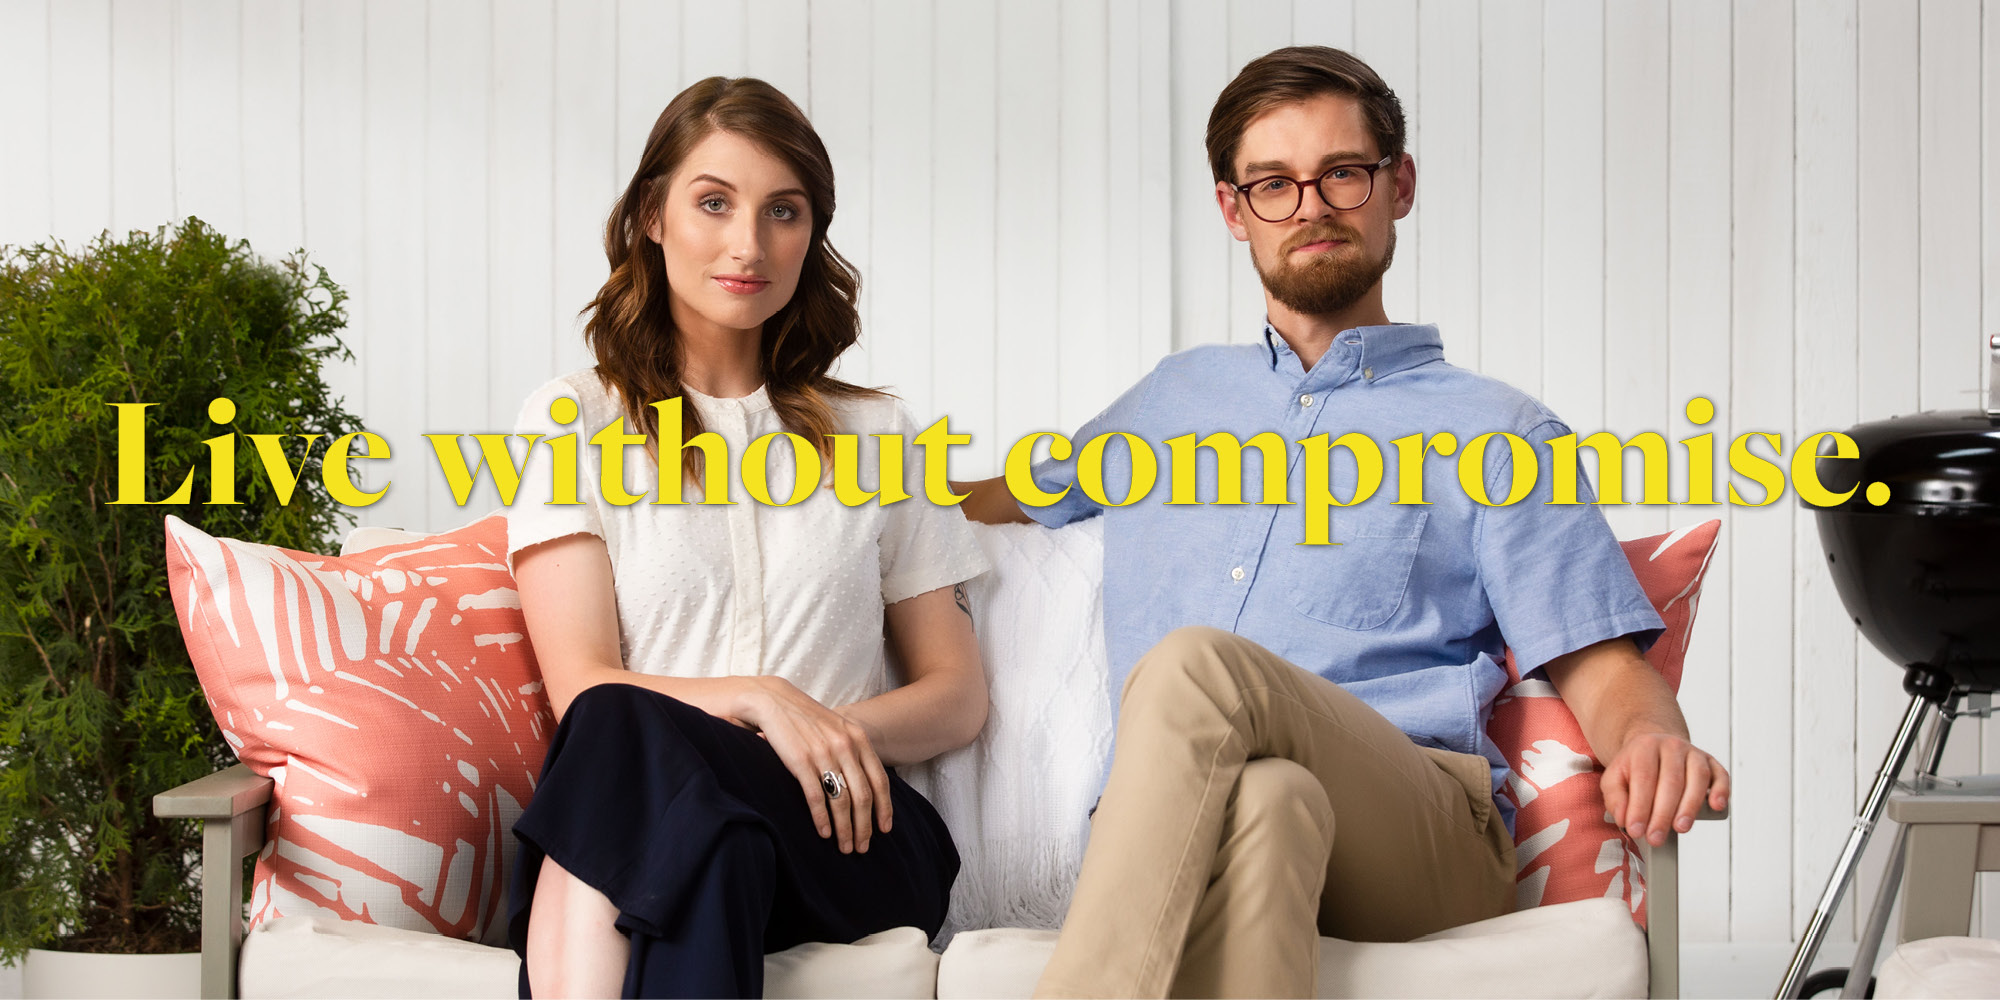 Live without compromise